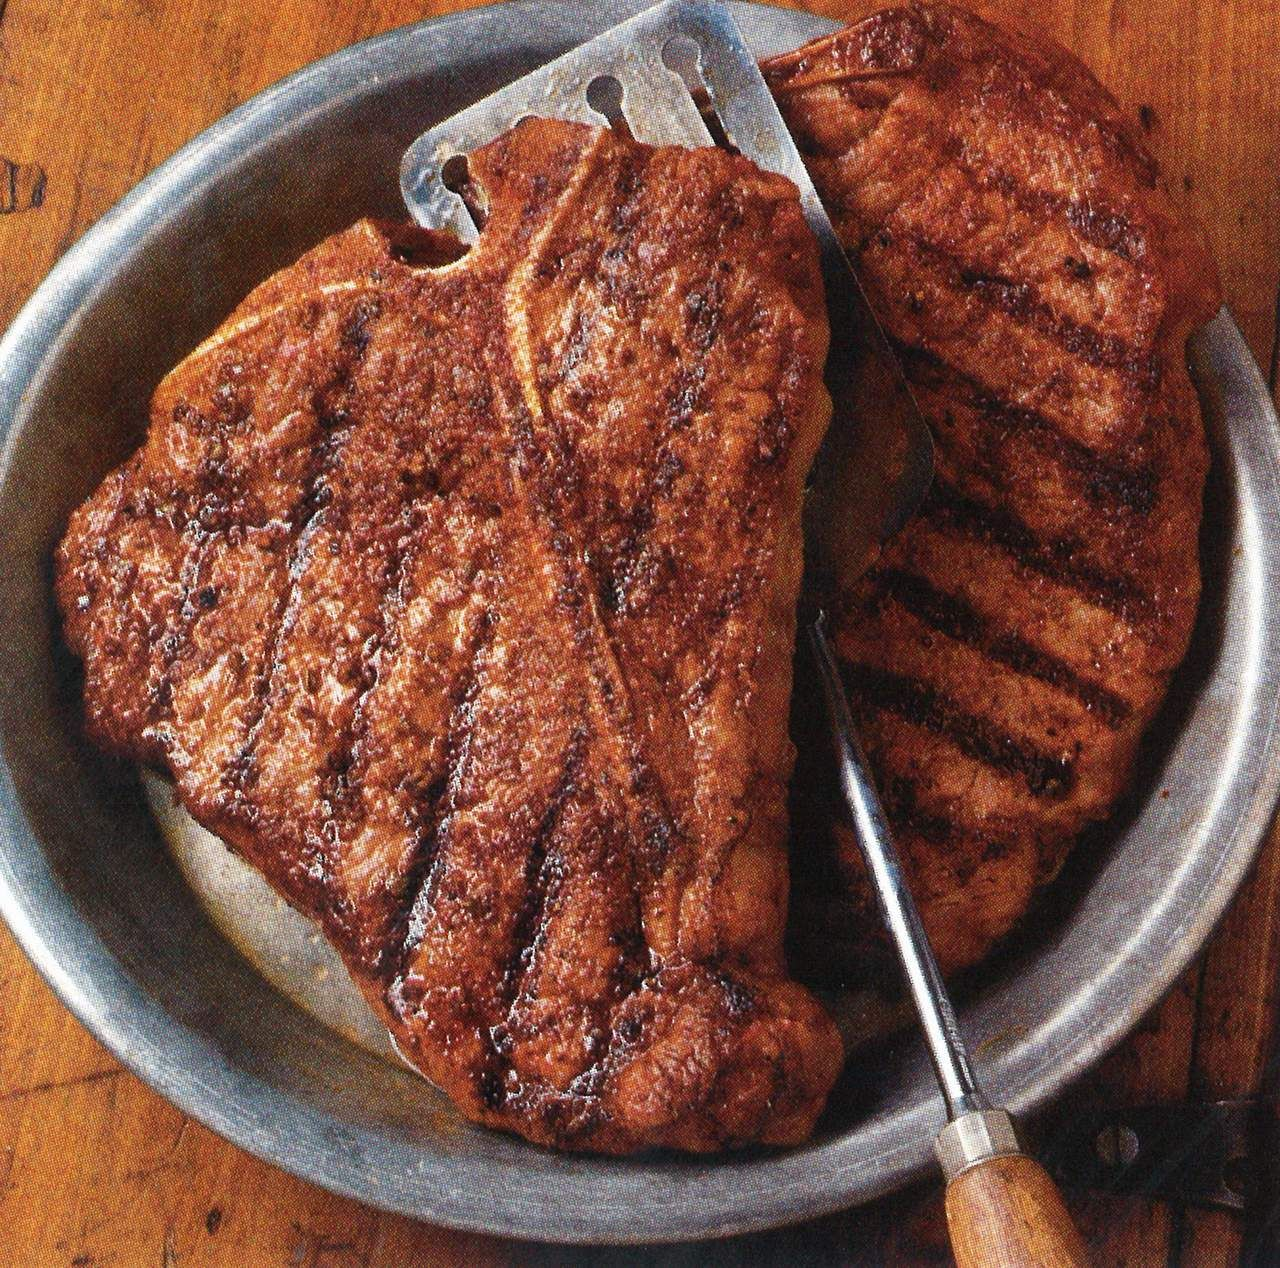 The best way to cook a t bone steak is by grilling it ...